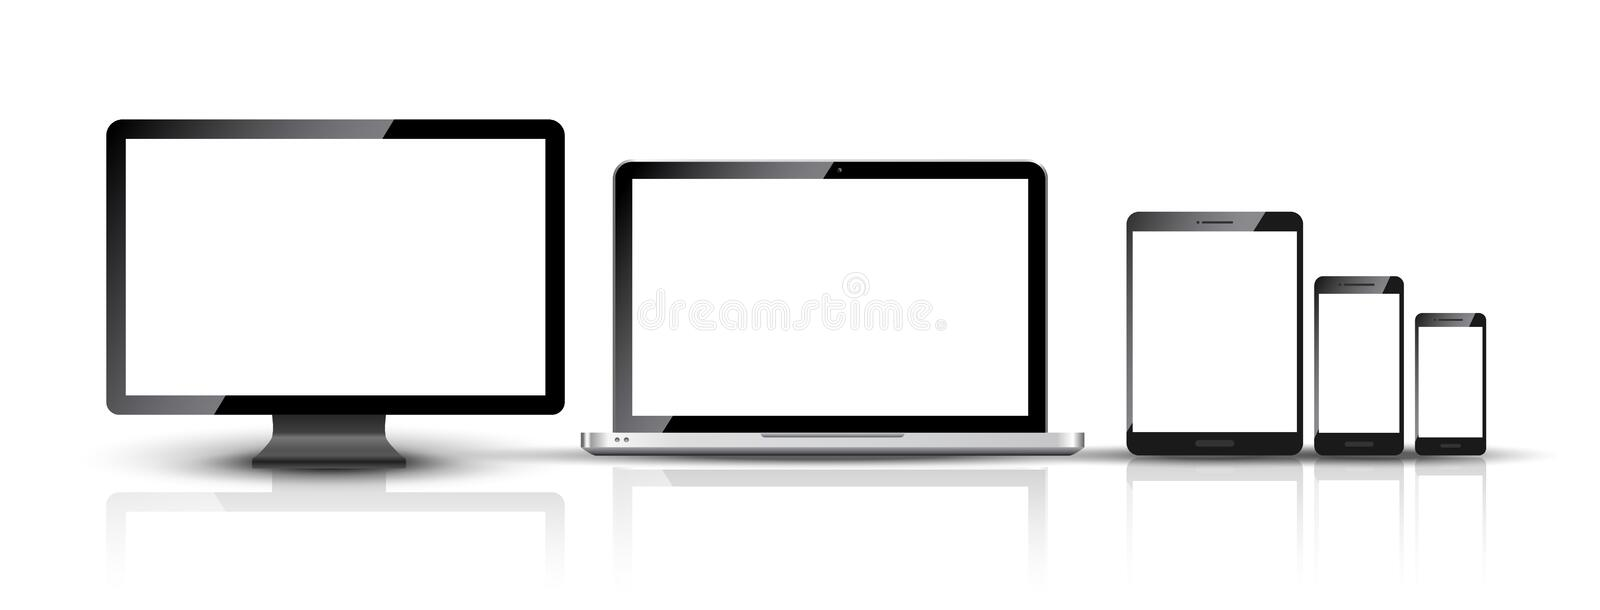 Computer monitor, smartphone, laptop and tablet pc design. Mobile phone smart digital device set.  vector illustration